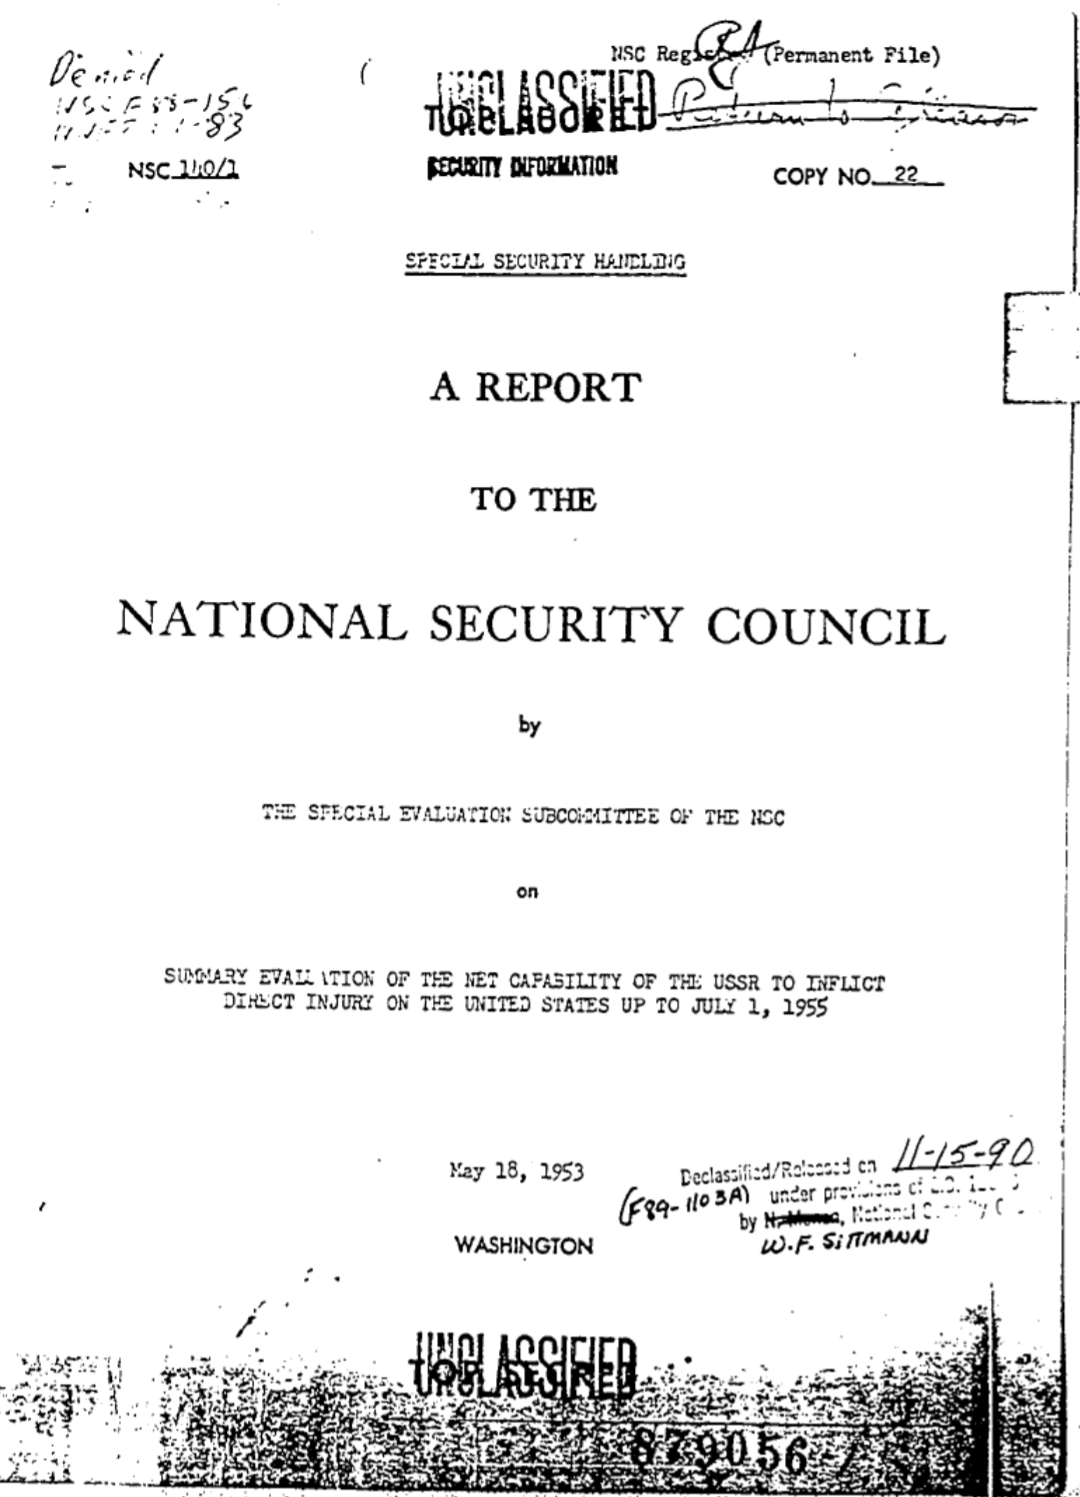 An image of the cover page of the original document.